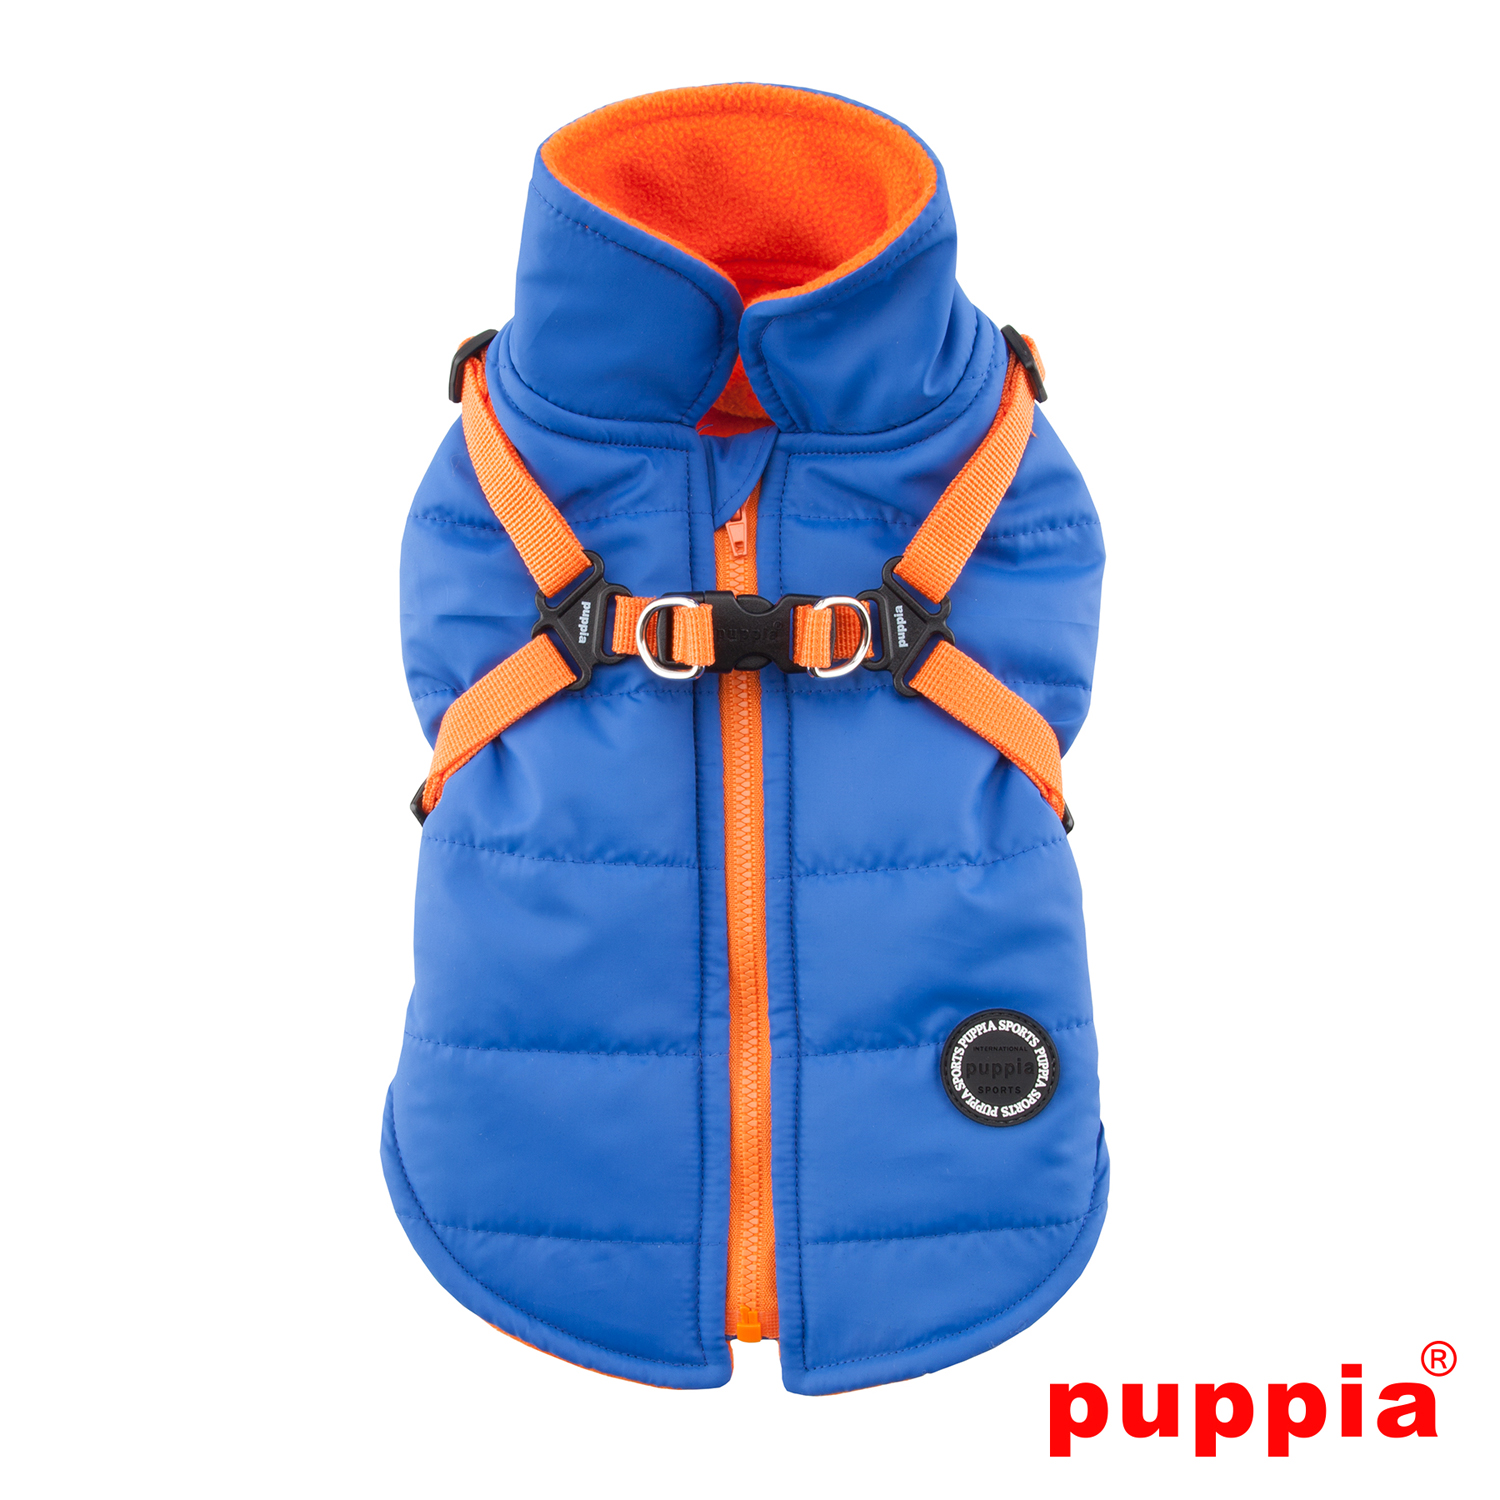 Mountaineer II Fleece Dog Vest by Puppia - Royal Blue